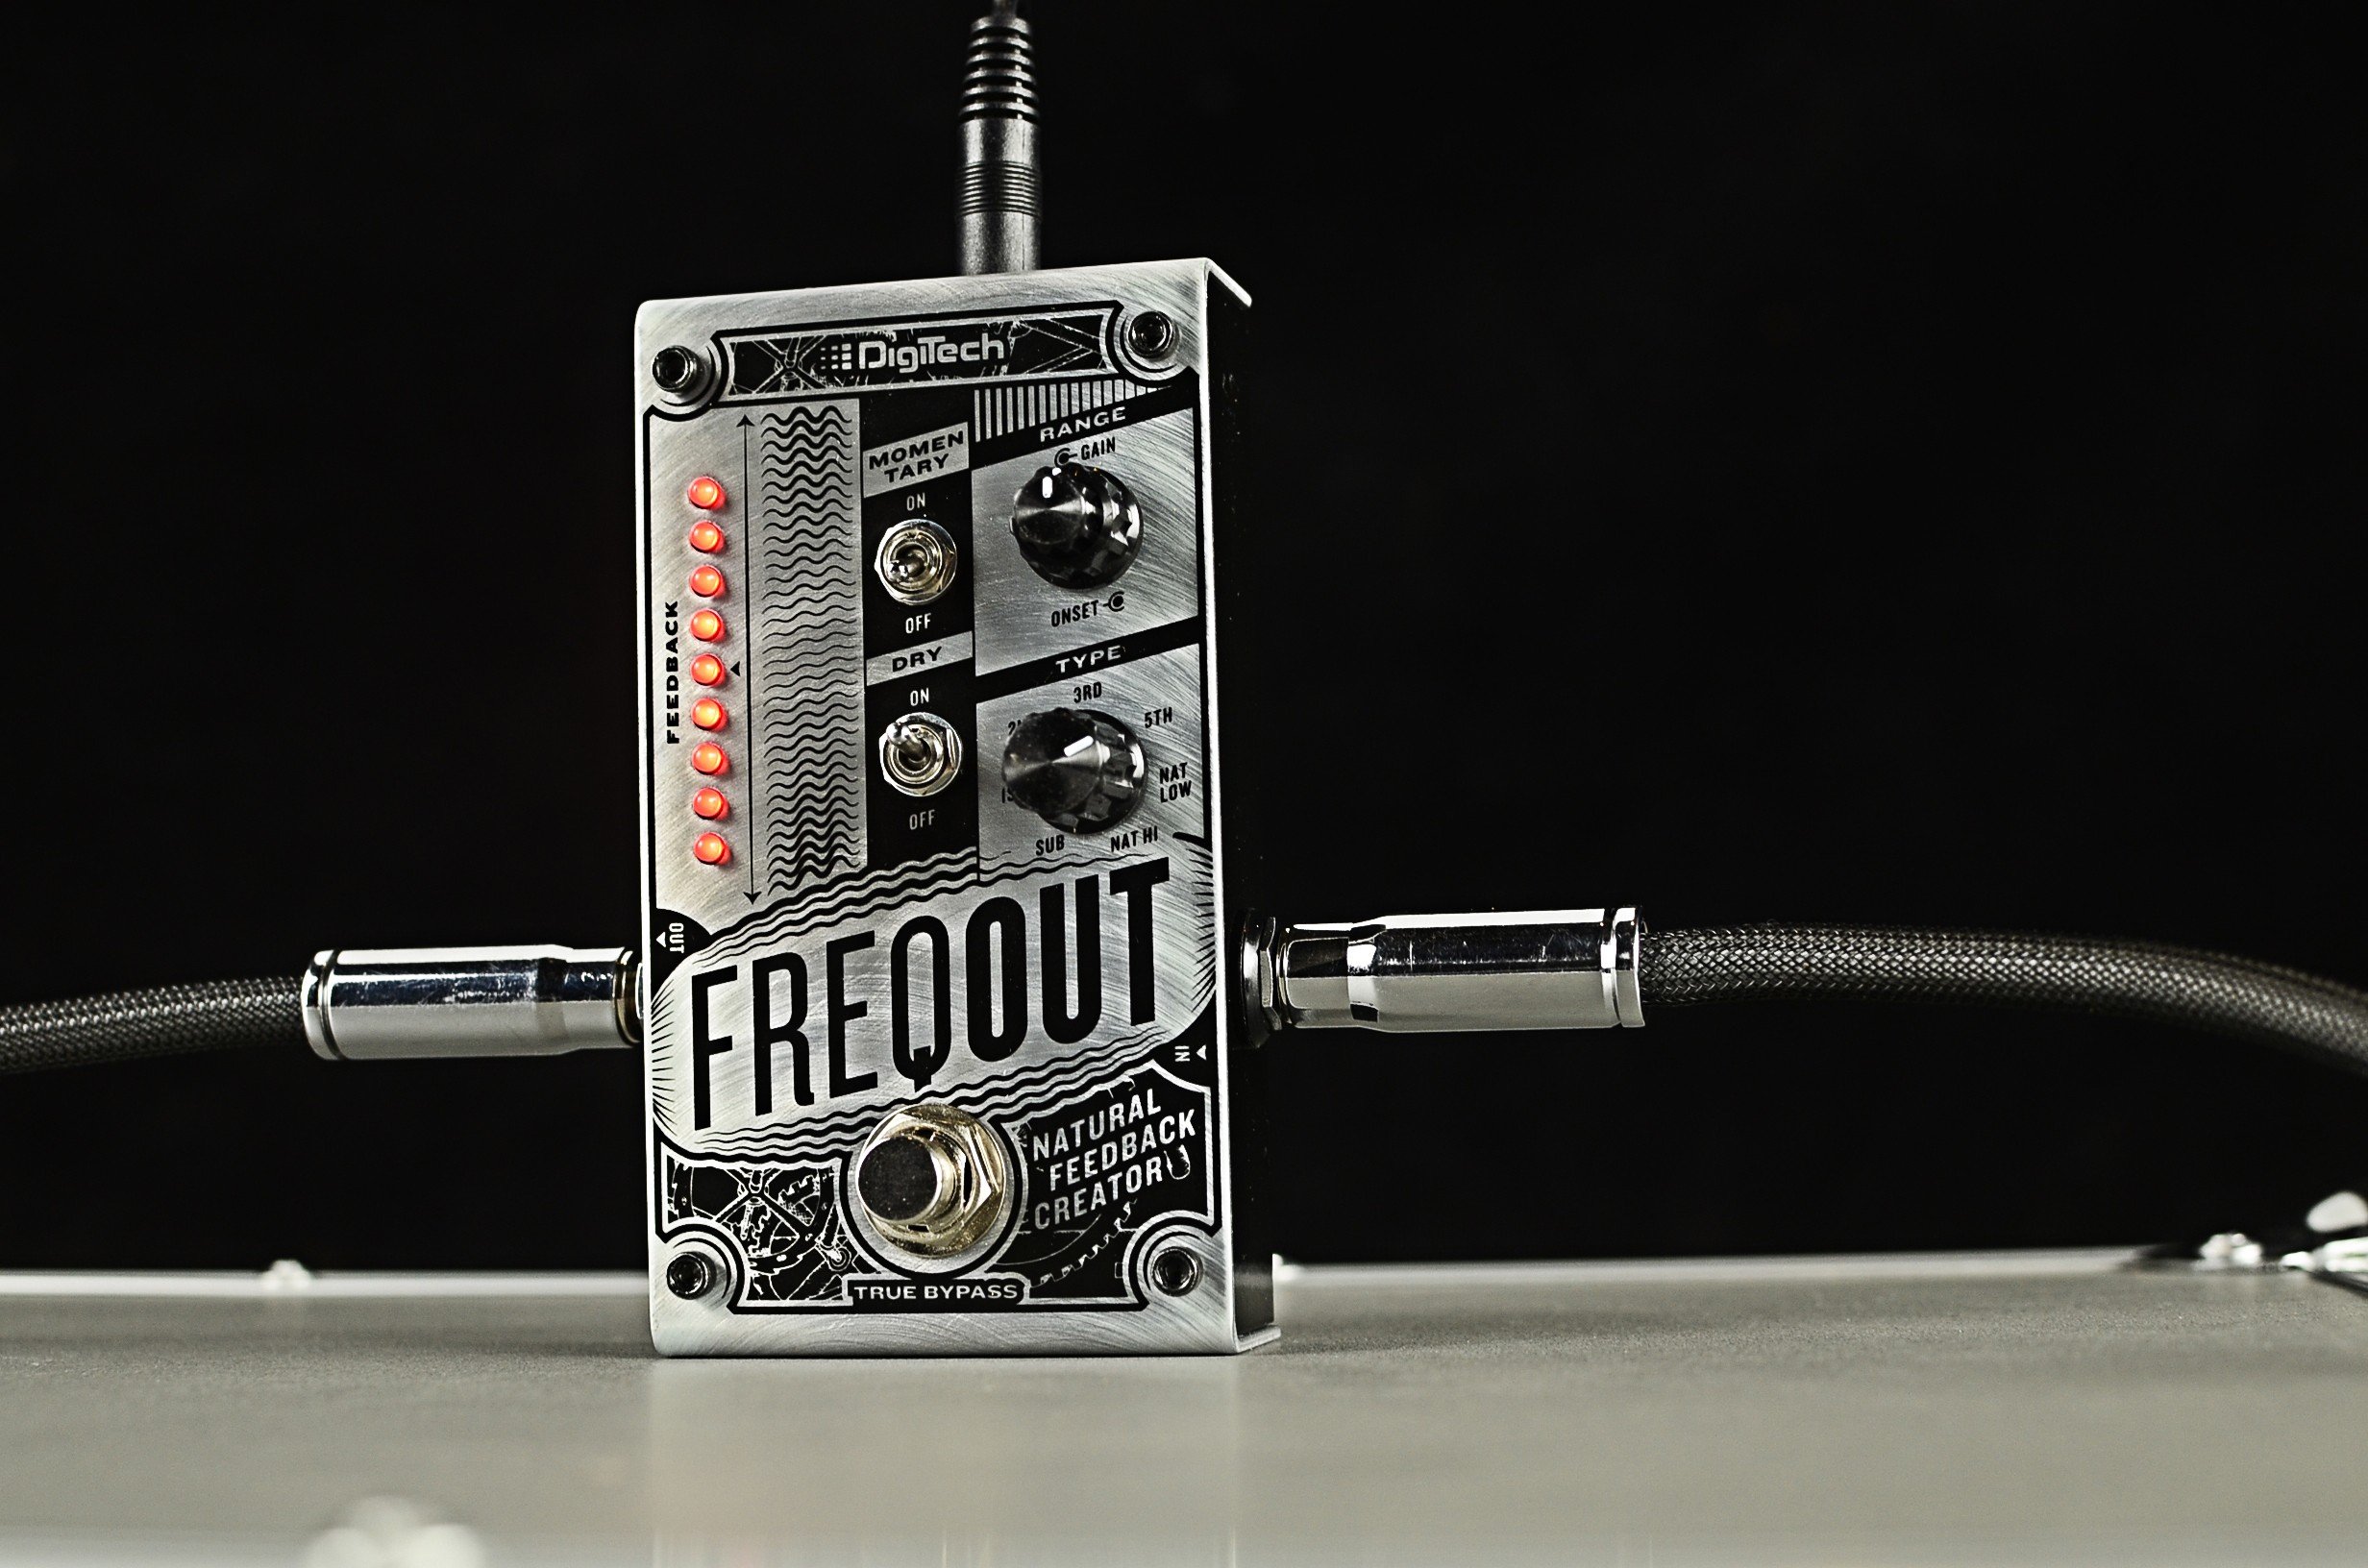 DigiTech FreqOut: Natural Feedback Creation Pedal